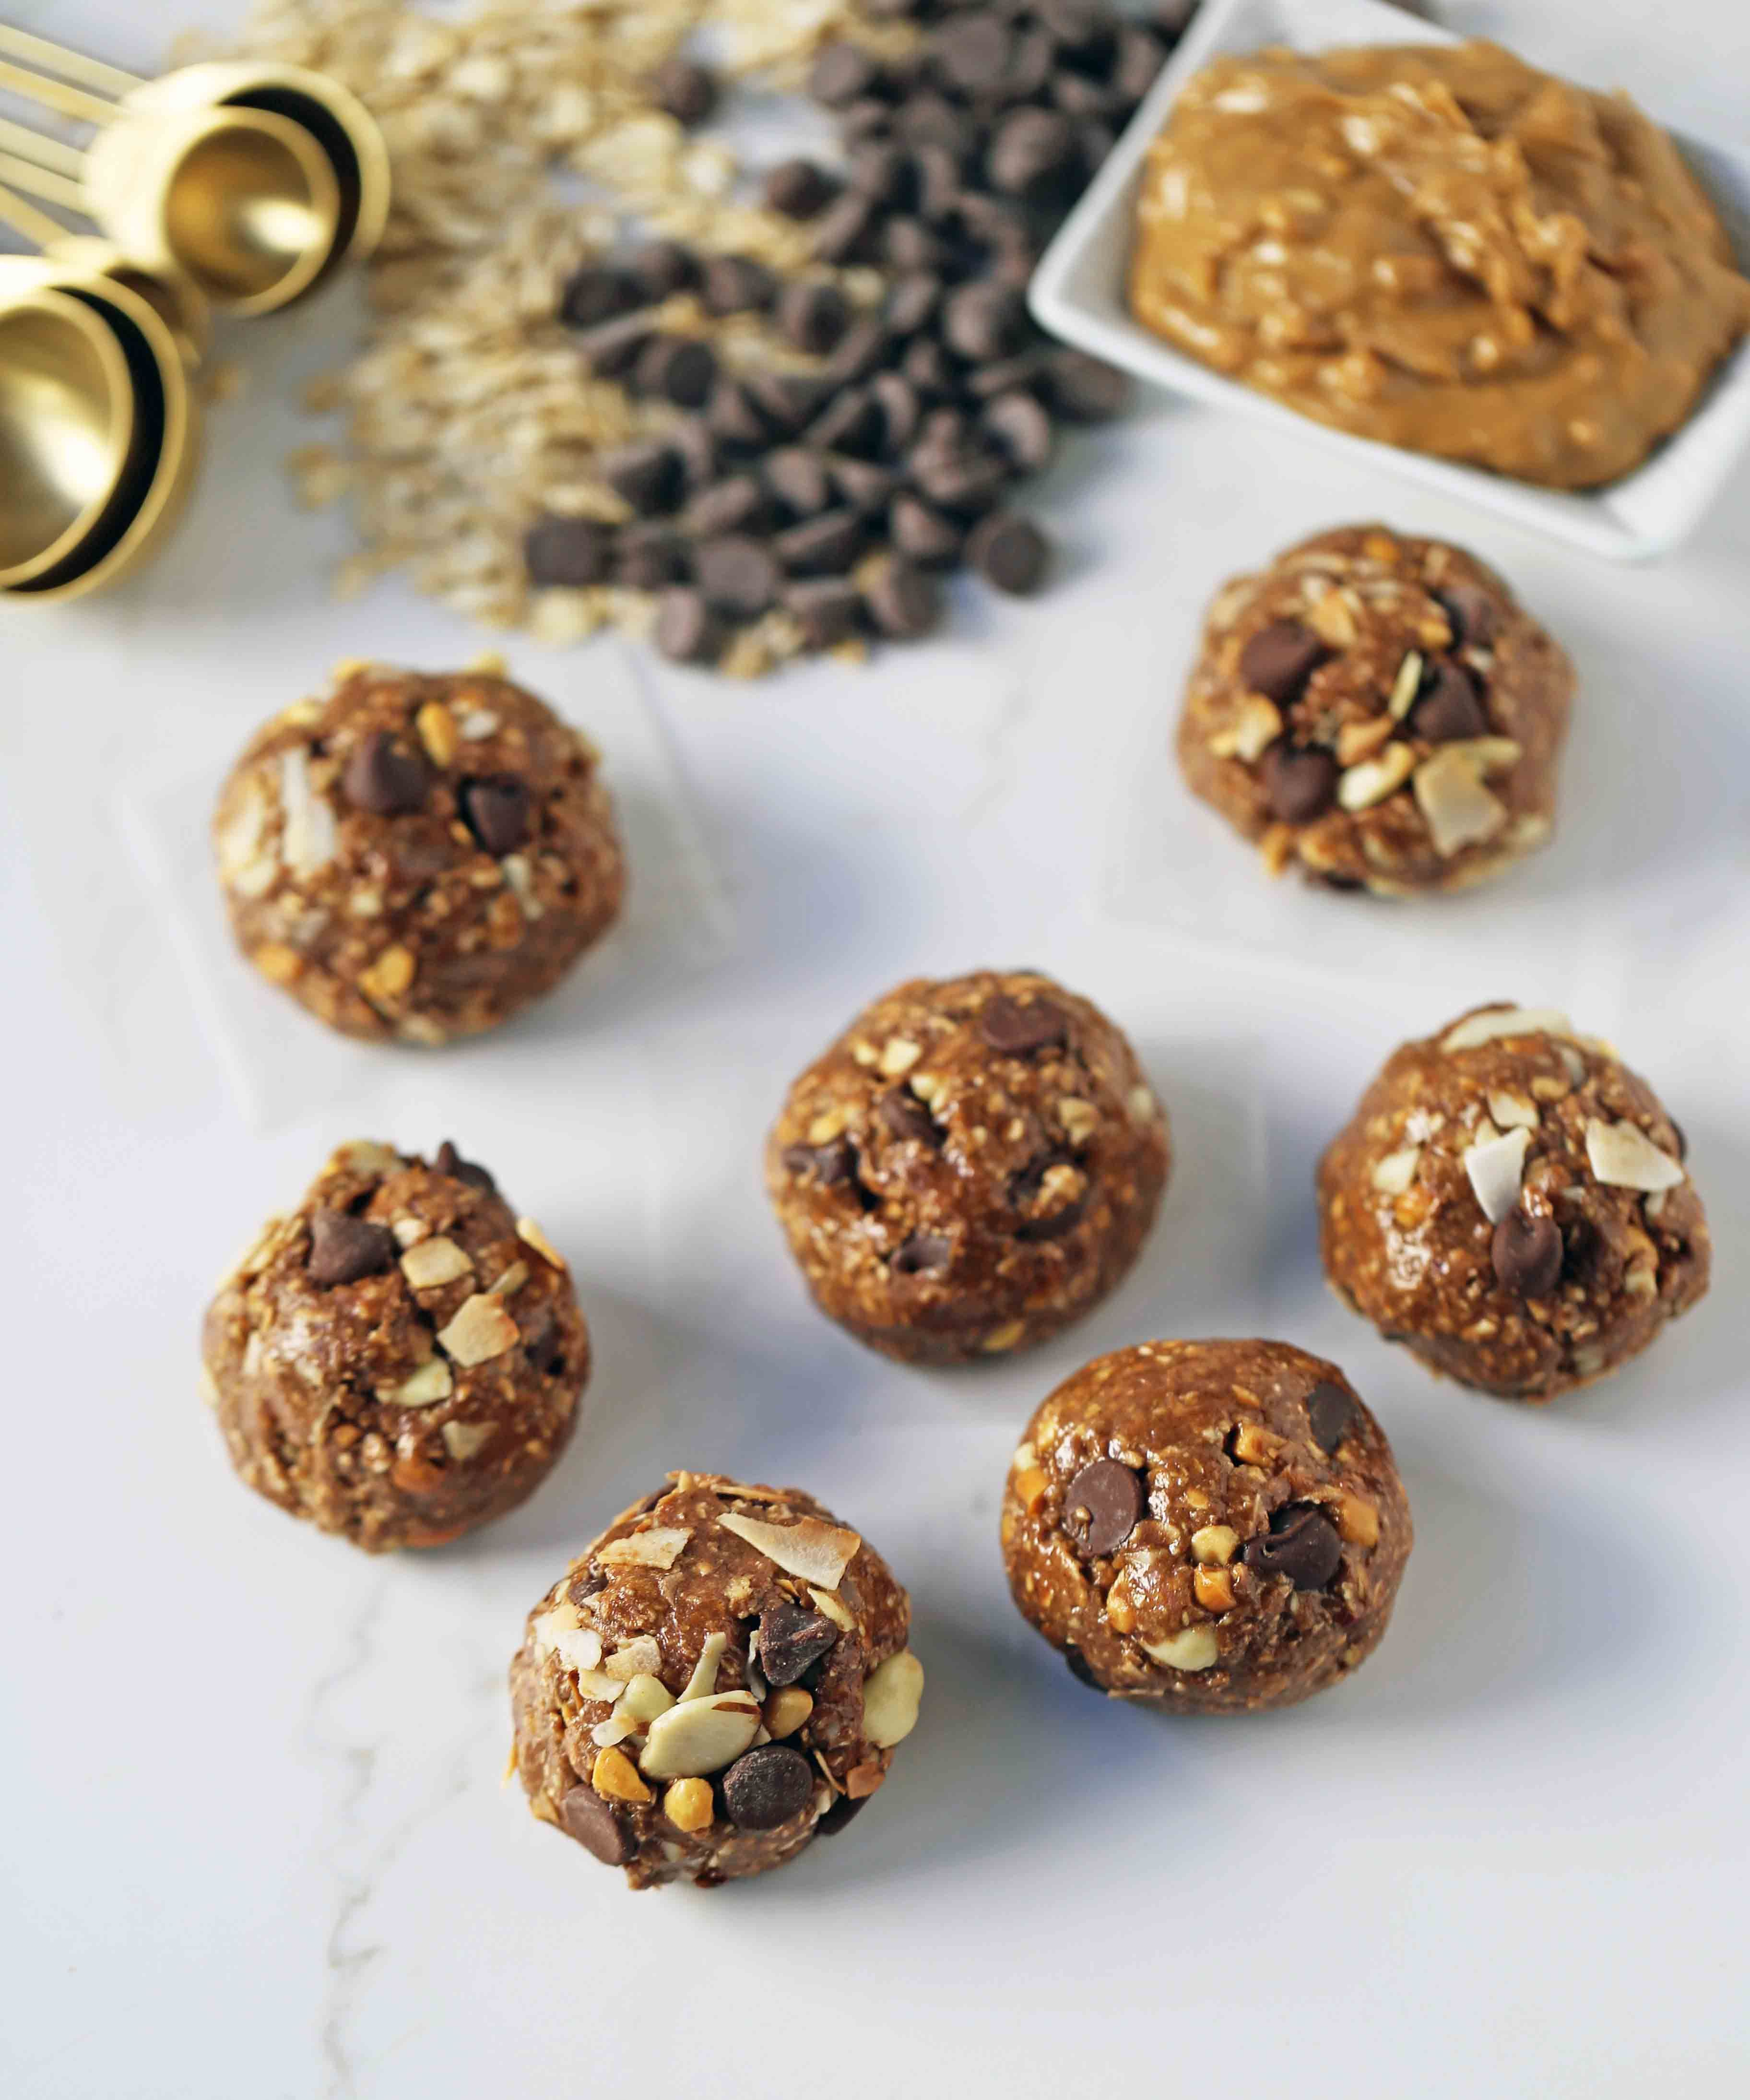 No Bake Protein Energy Balls High Protein No Sugar Added Energy Bites A Healthy Filli Healthy High Protein Snacks Protein Balls Recipes No Bake Energy Bites